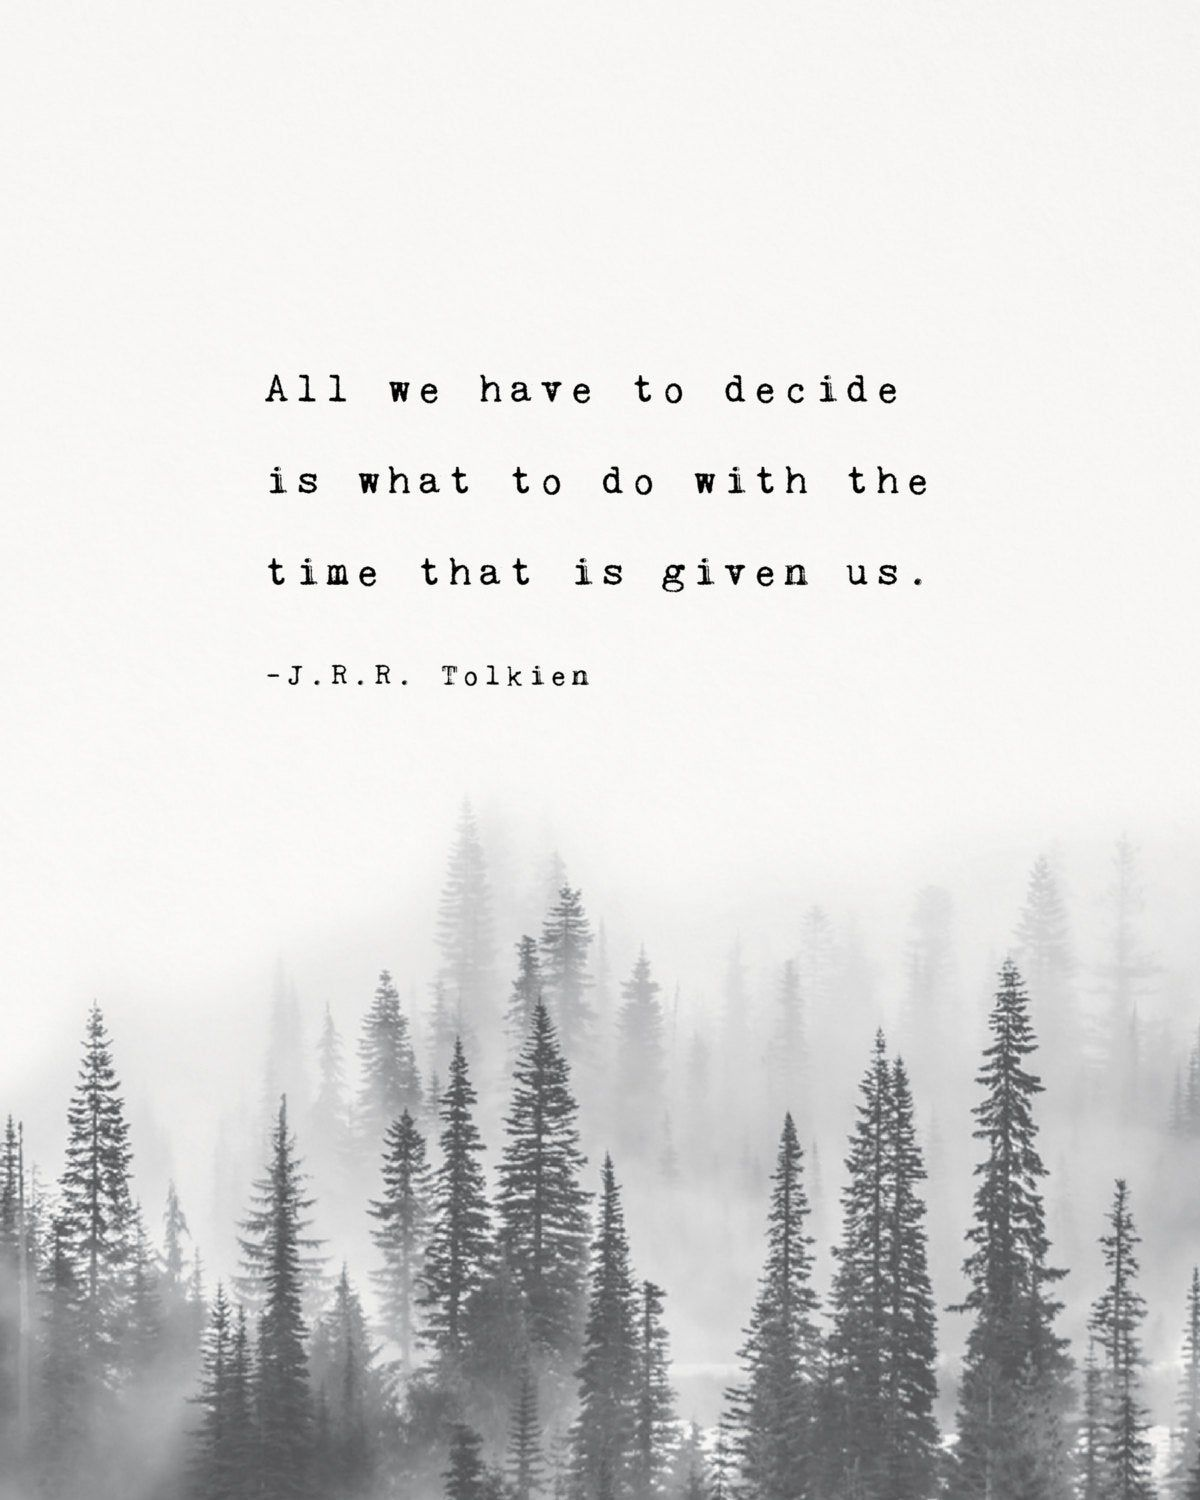 J.R.R. Tolkien quote poster All we have to decide is what to do with the time that is given us, trees art, gifts for him, men's art #usquotes